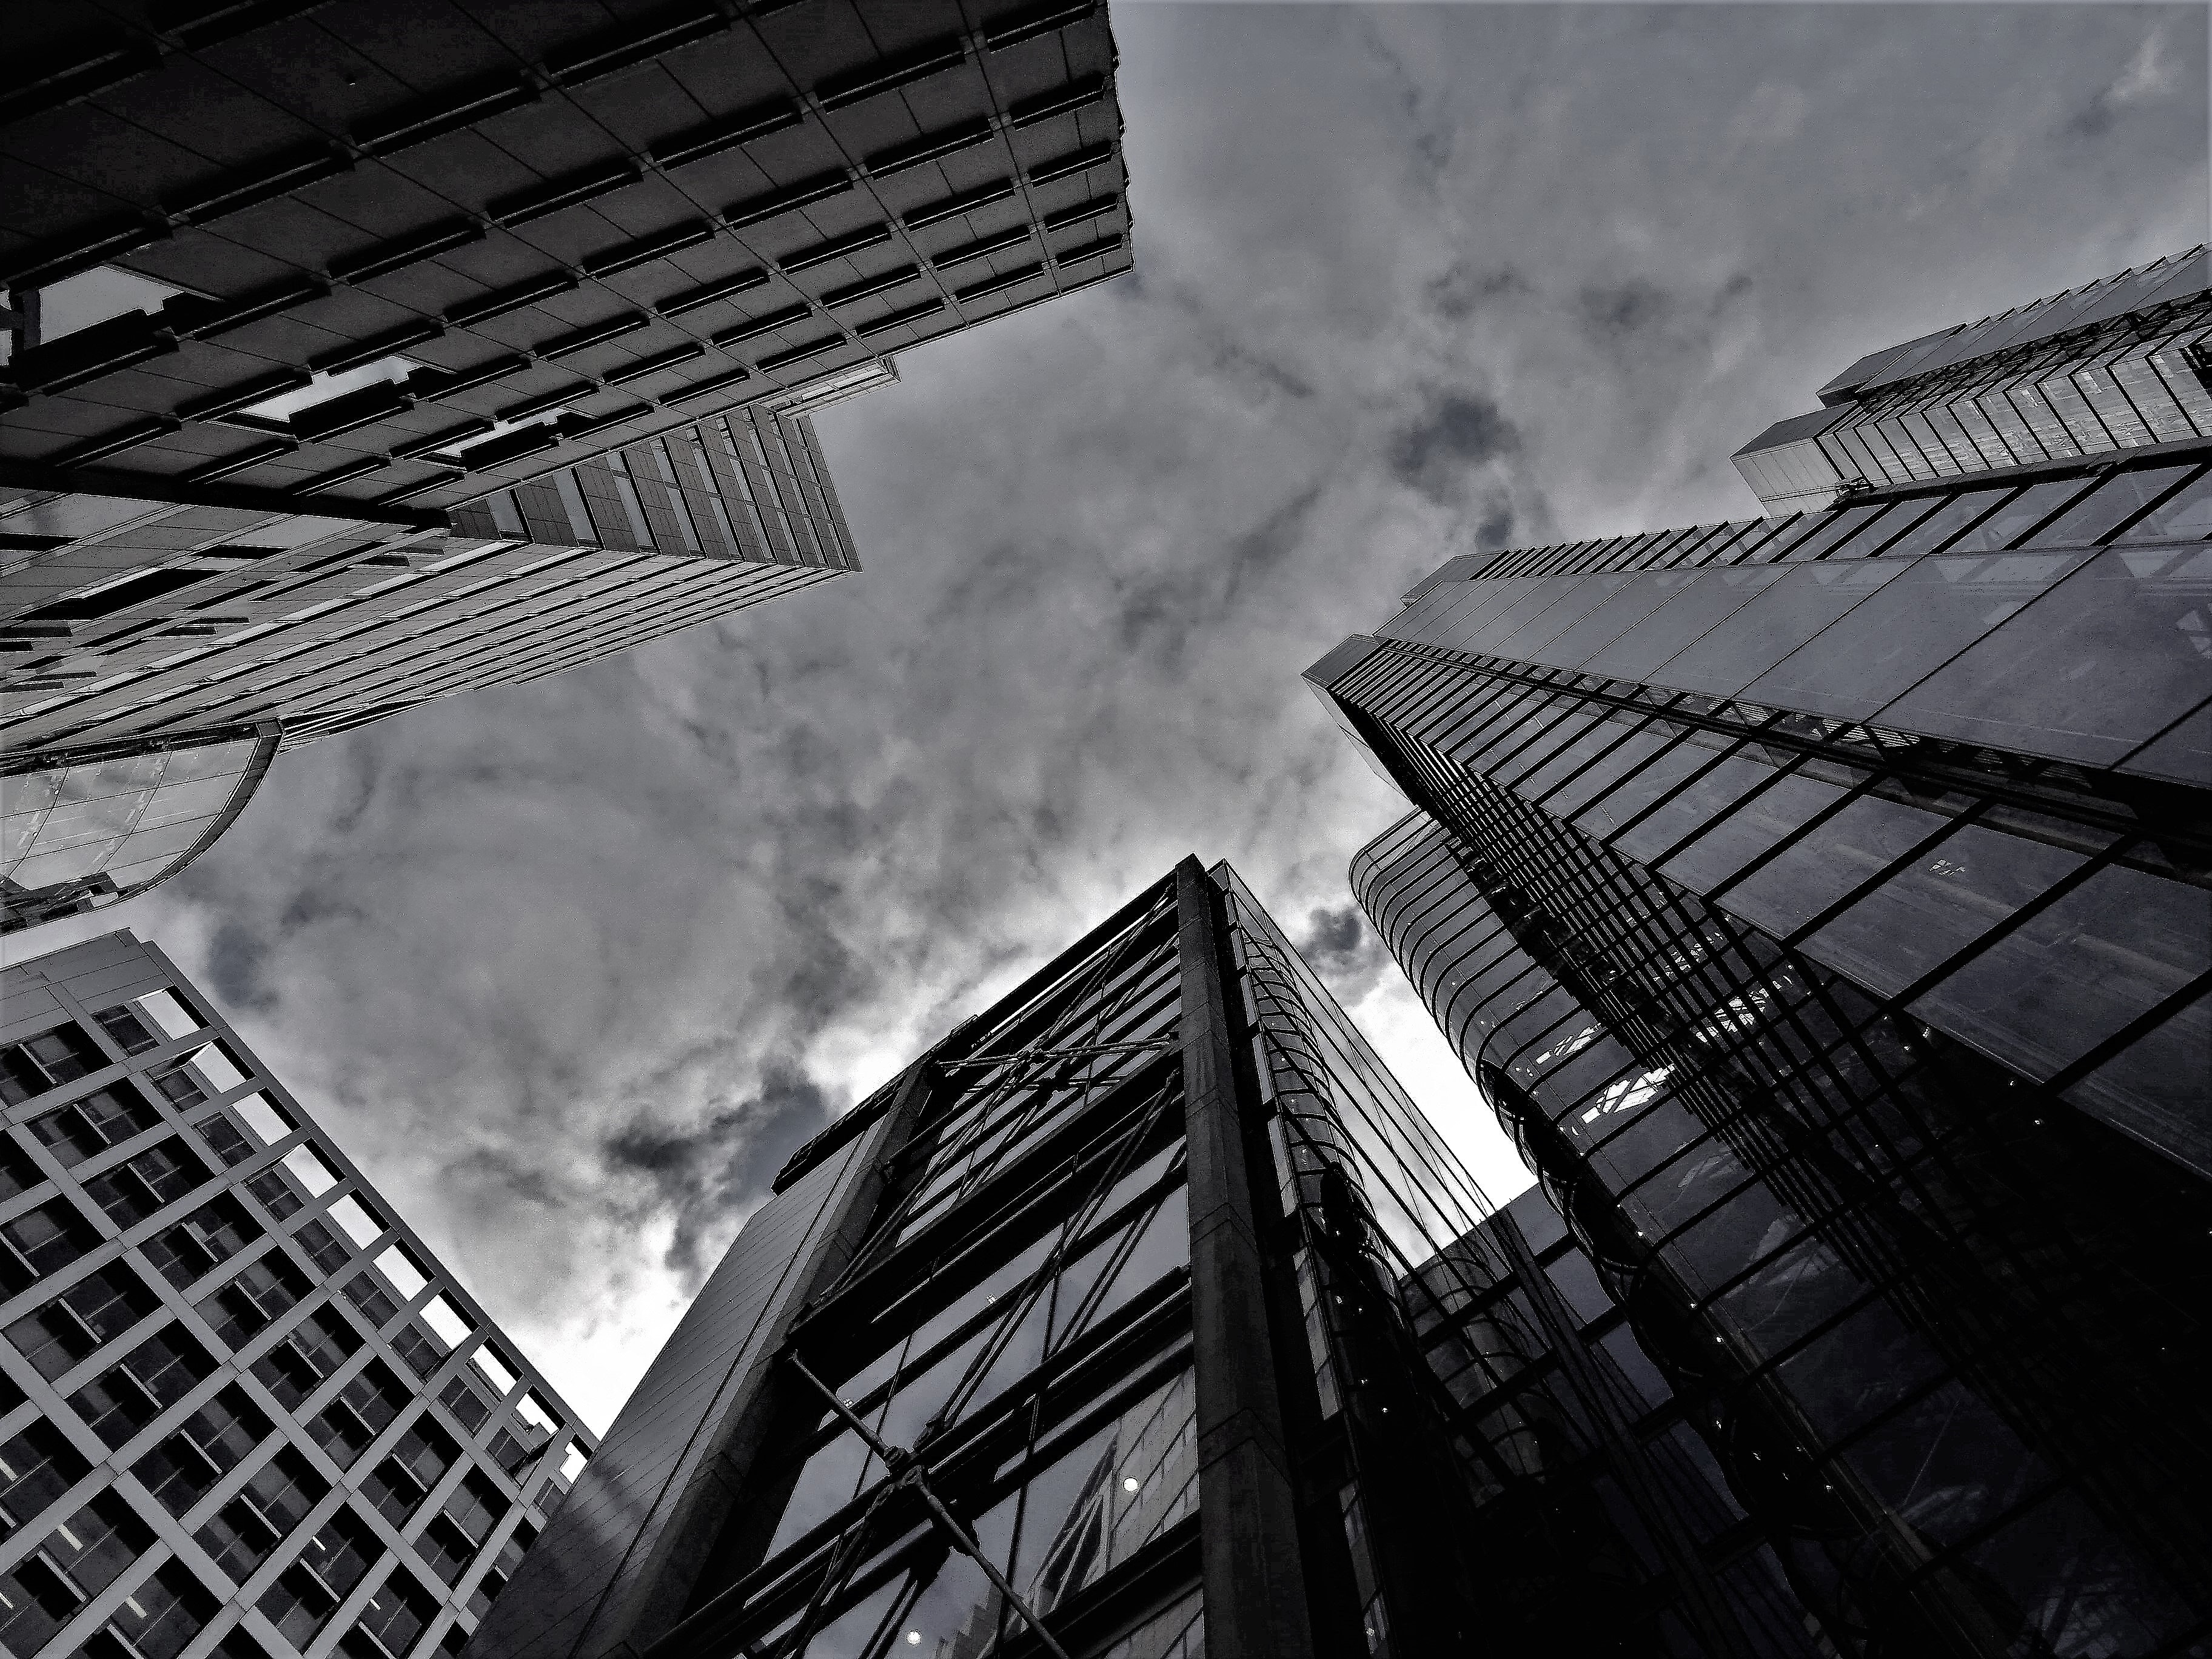 Grayscale Photography of Buildings, Architectural design, Low angle shot, Urban, Tall, HQ Photo